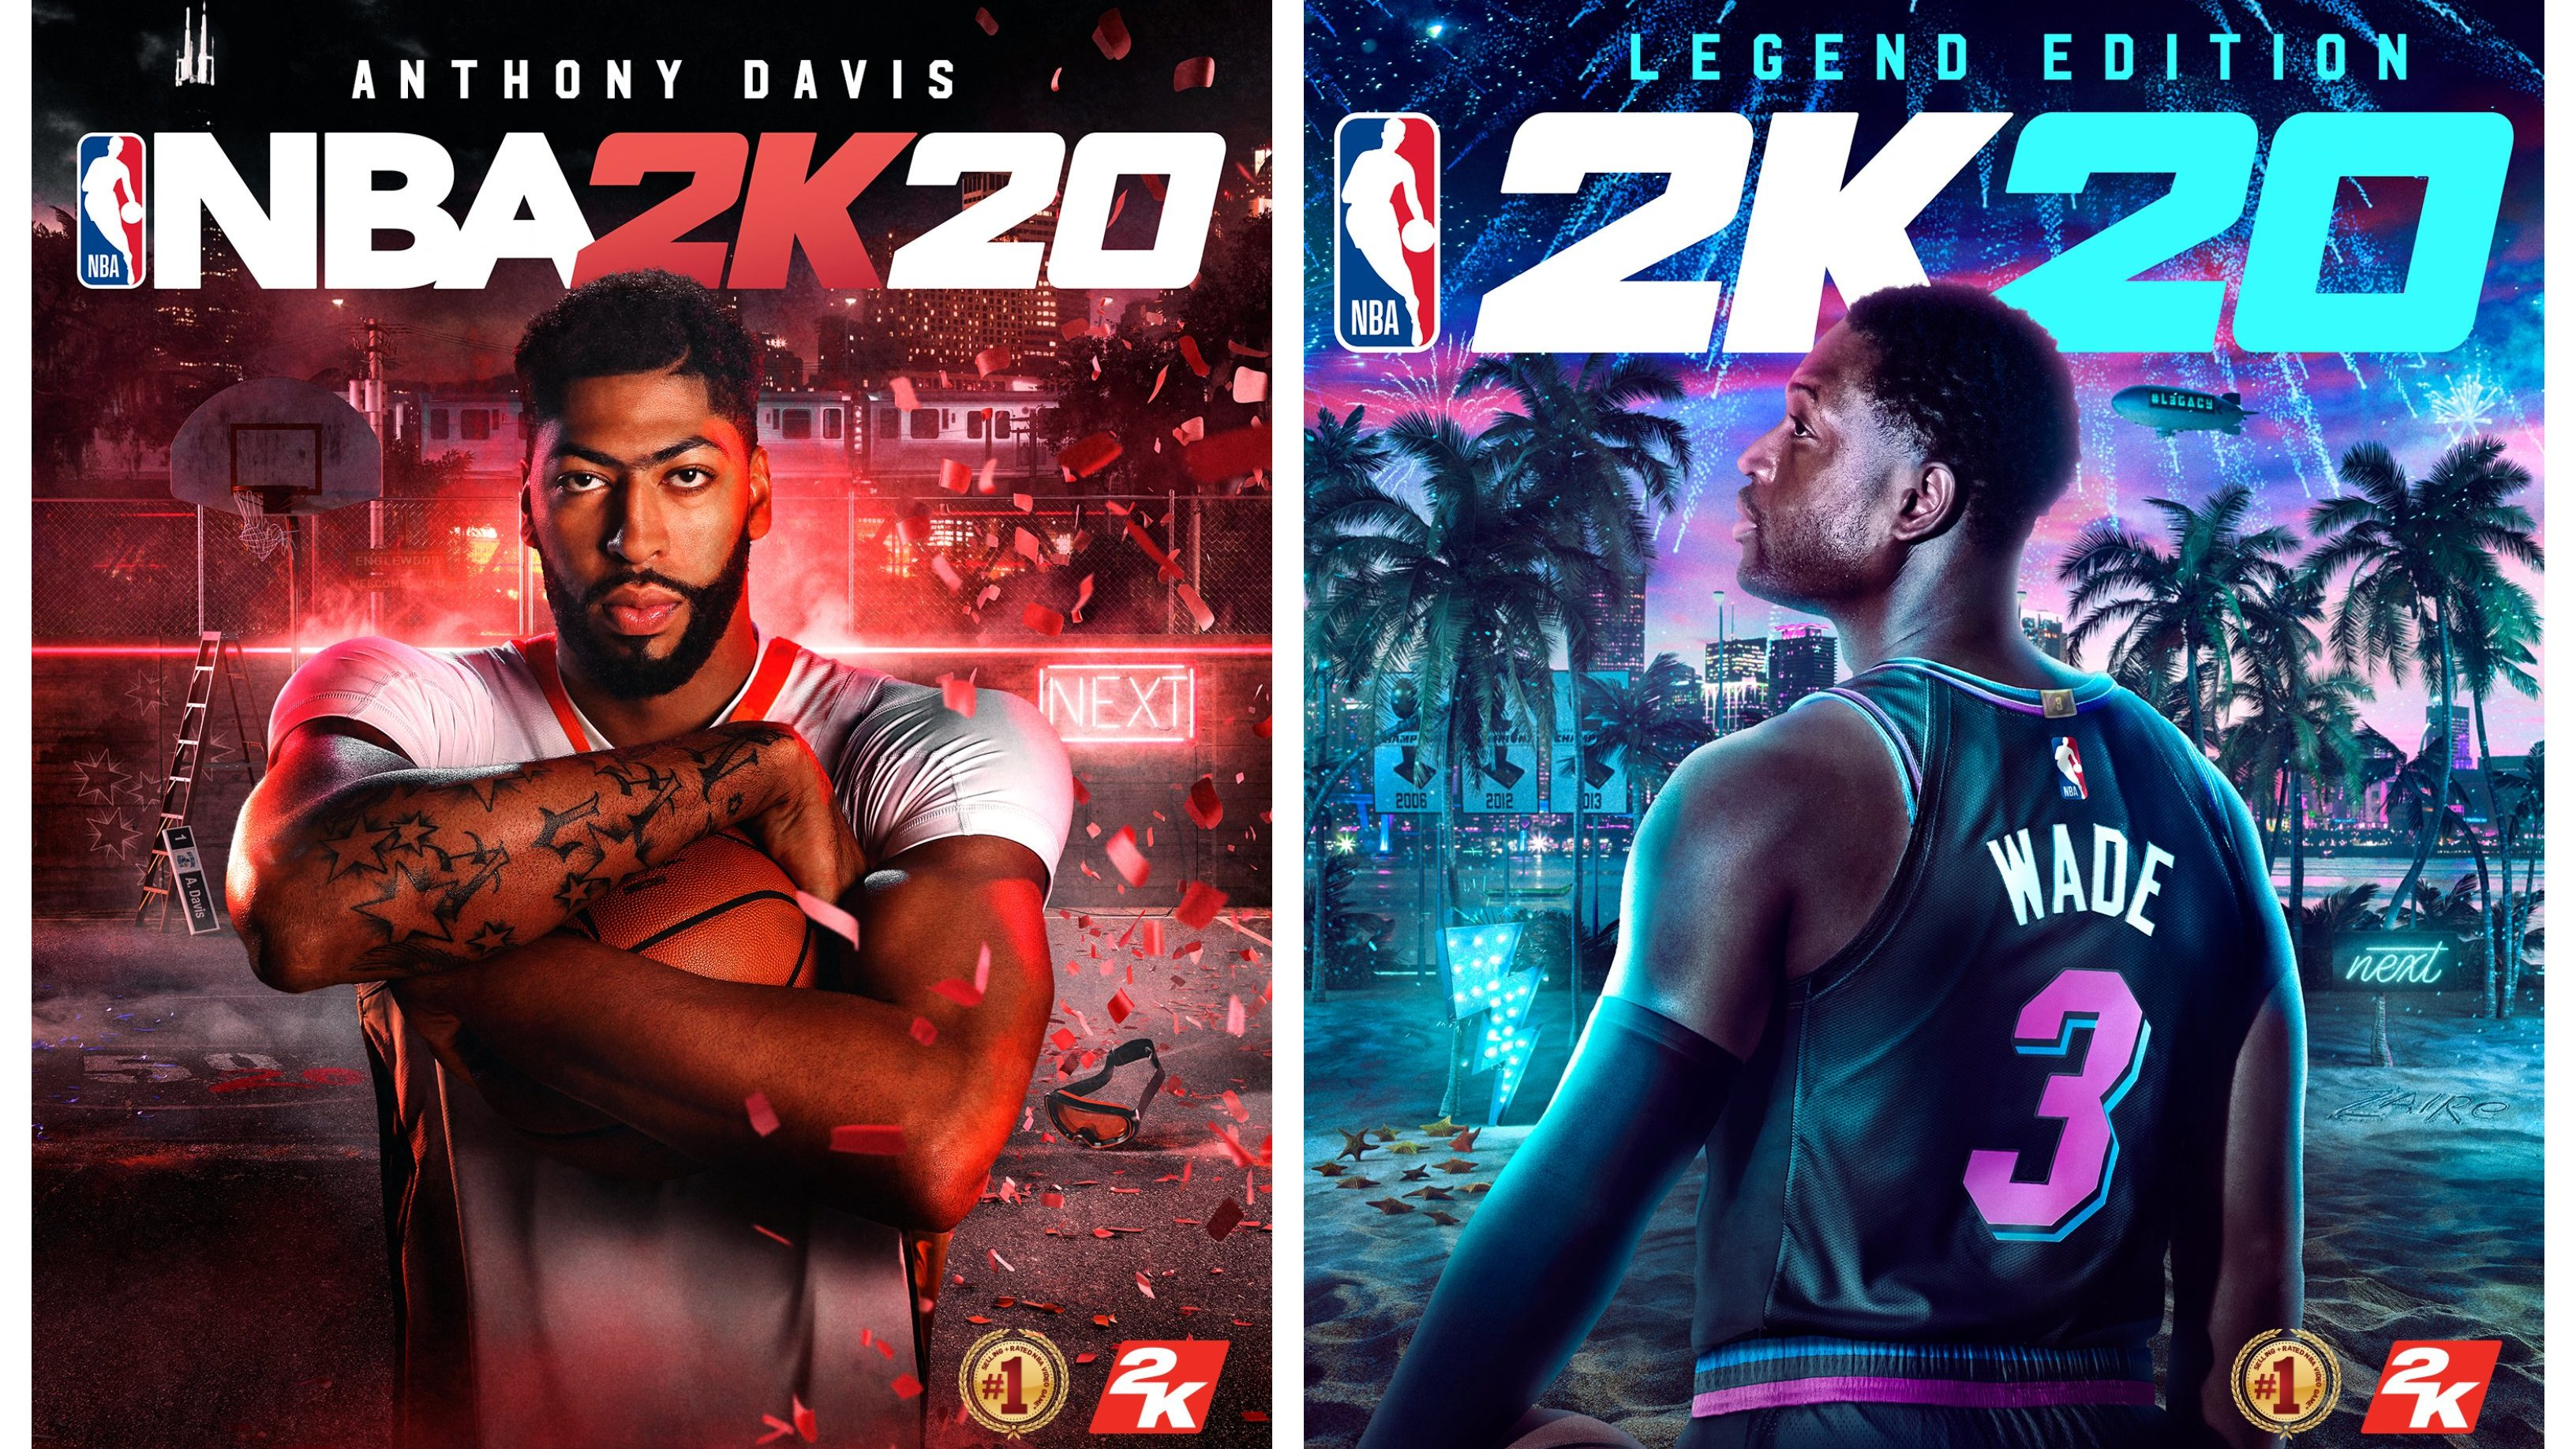 NBA 2K20 bug issues problem solution download update